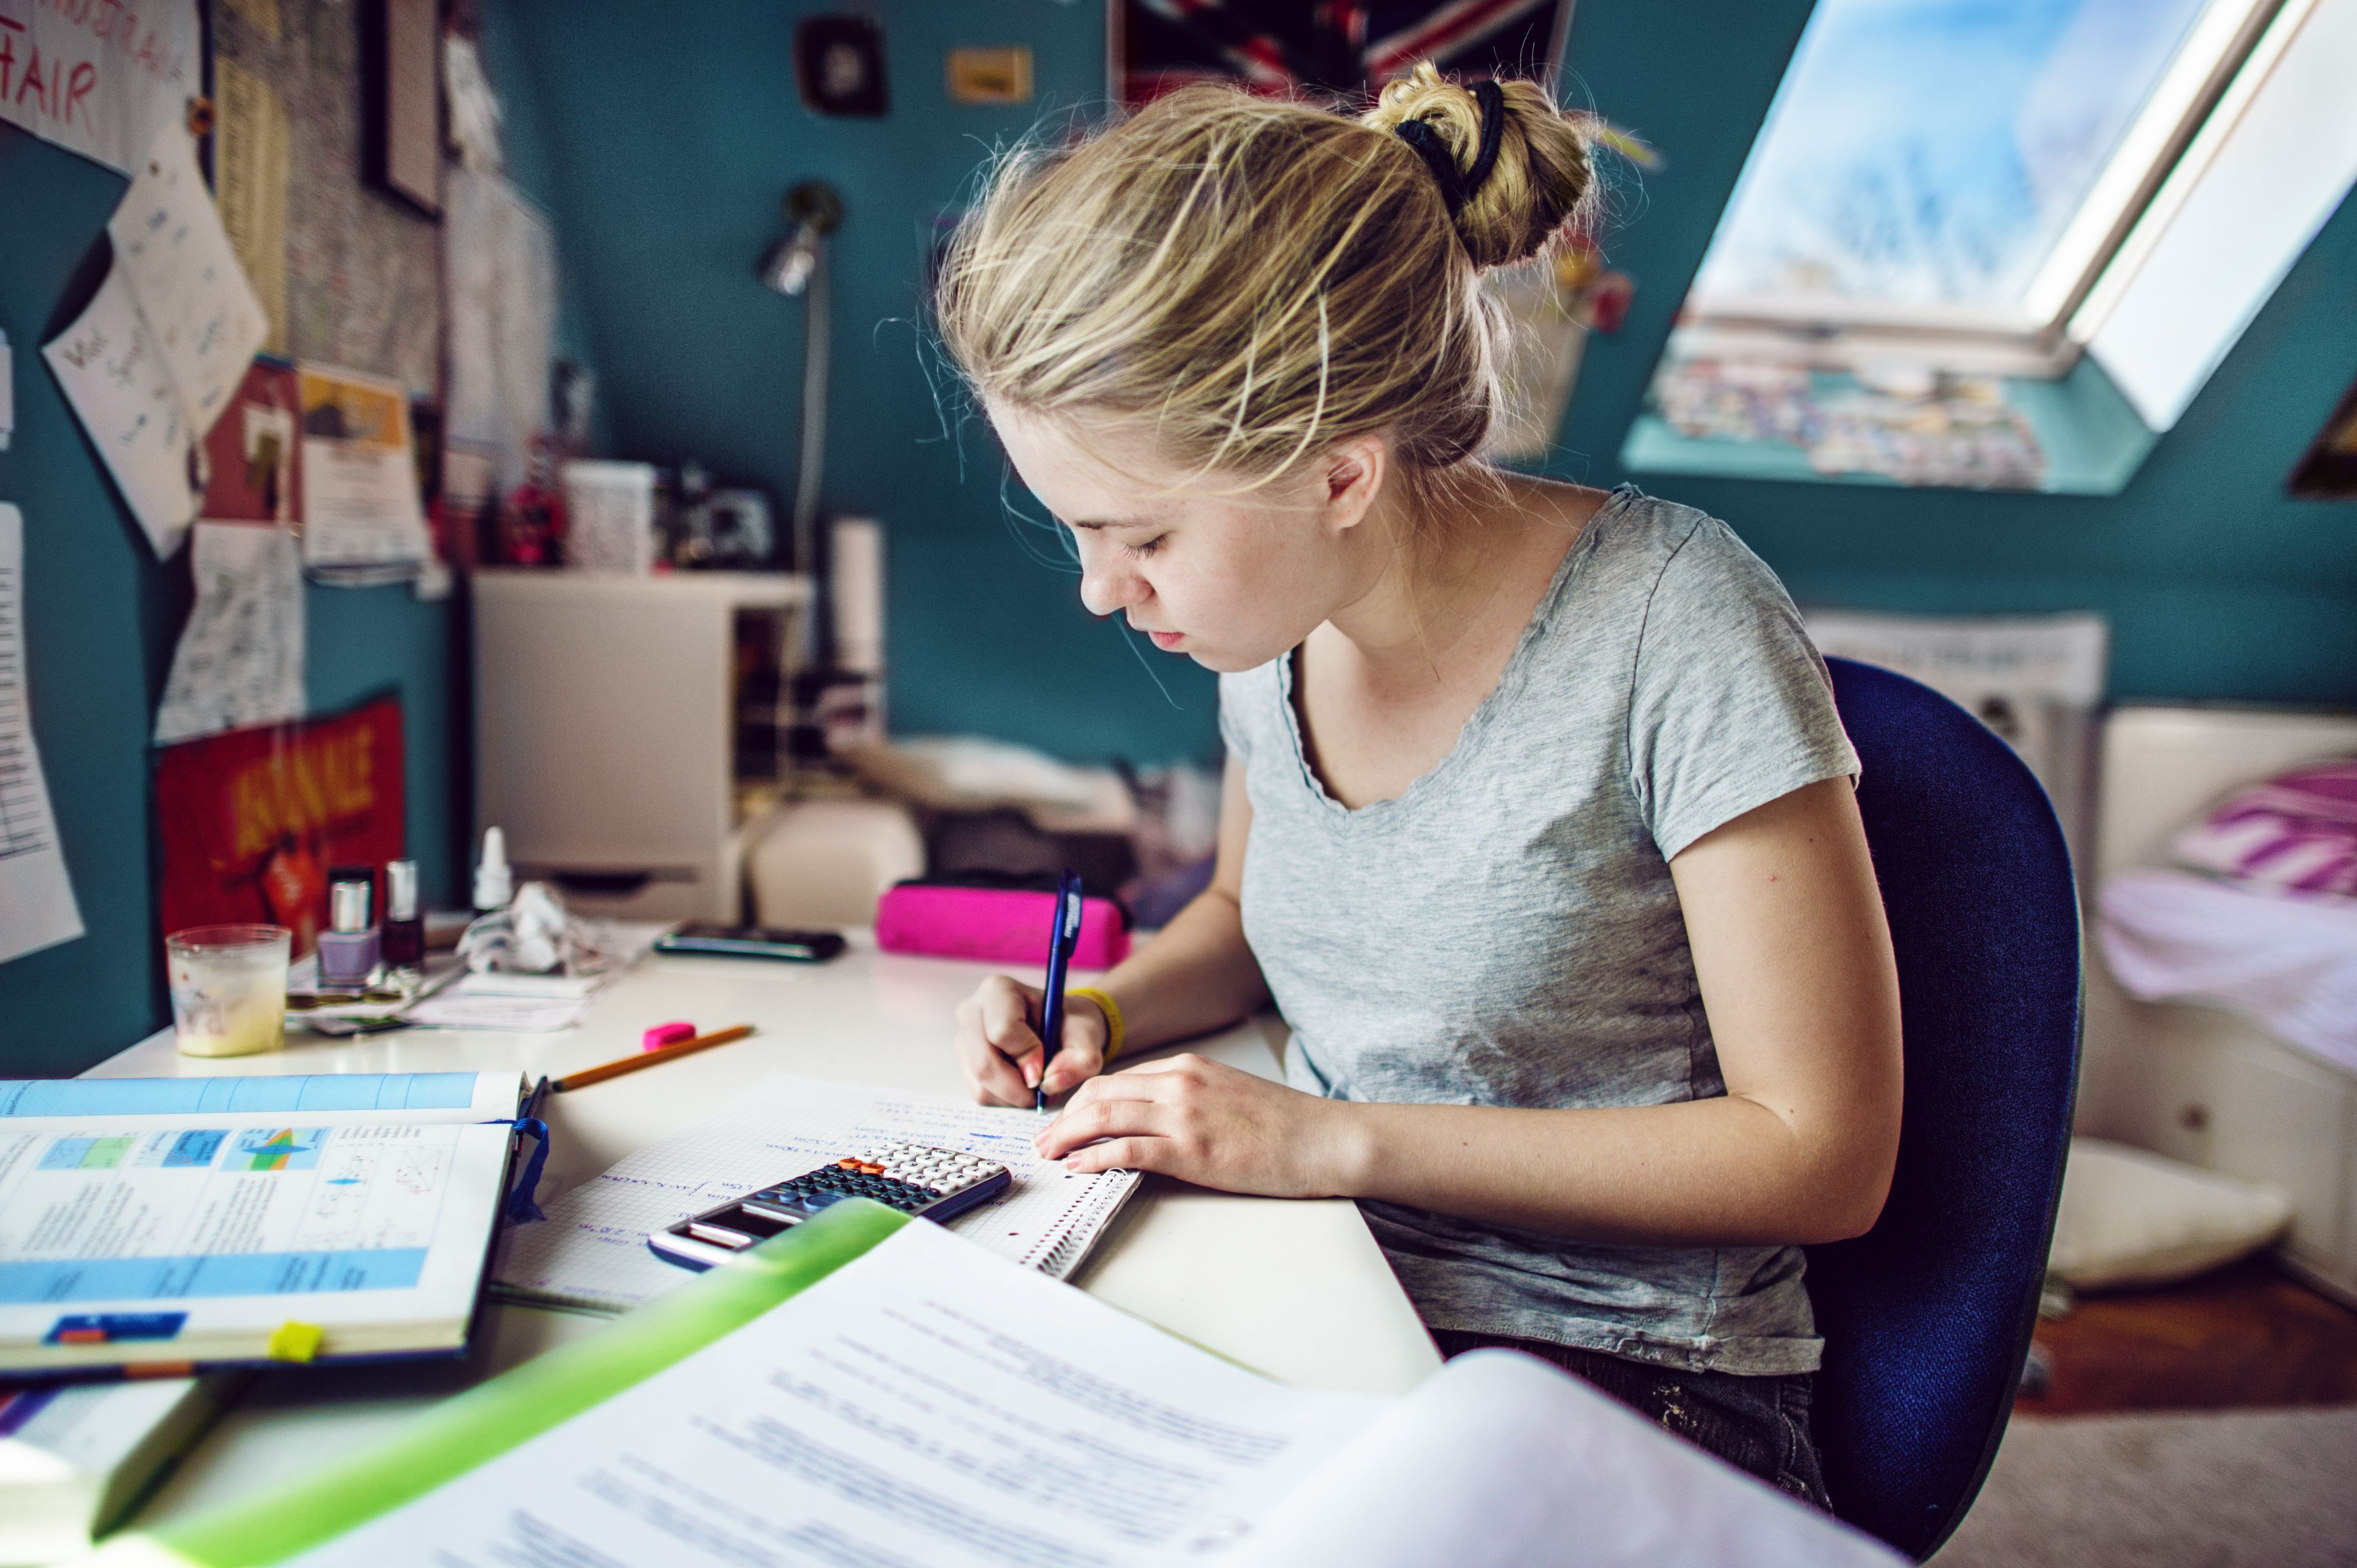 Yound Womand Doing Her Homework At Her Desk Dbe Aad B D C Dd as well Dividedecimalpowertenp I in addition Dividedecimalpowertenp as well Rectangle Area And Perimeter Worksheets moreover Math S. on 7th grade math geometry worksheets